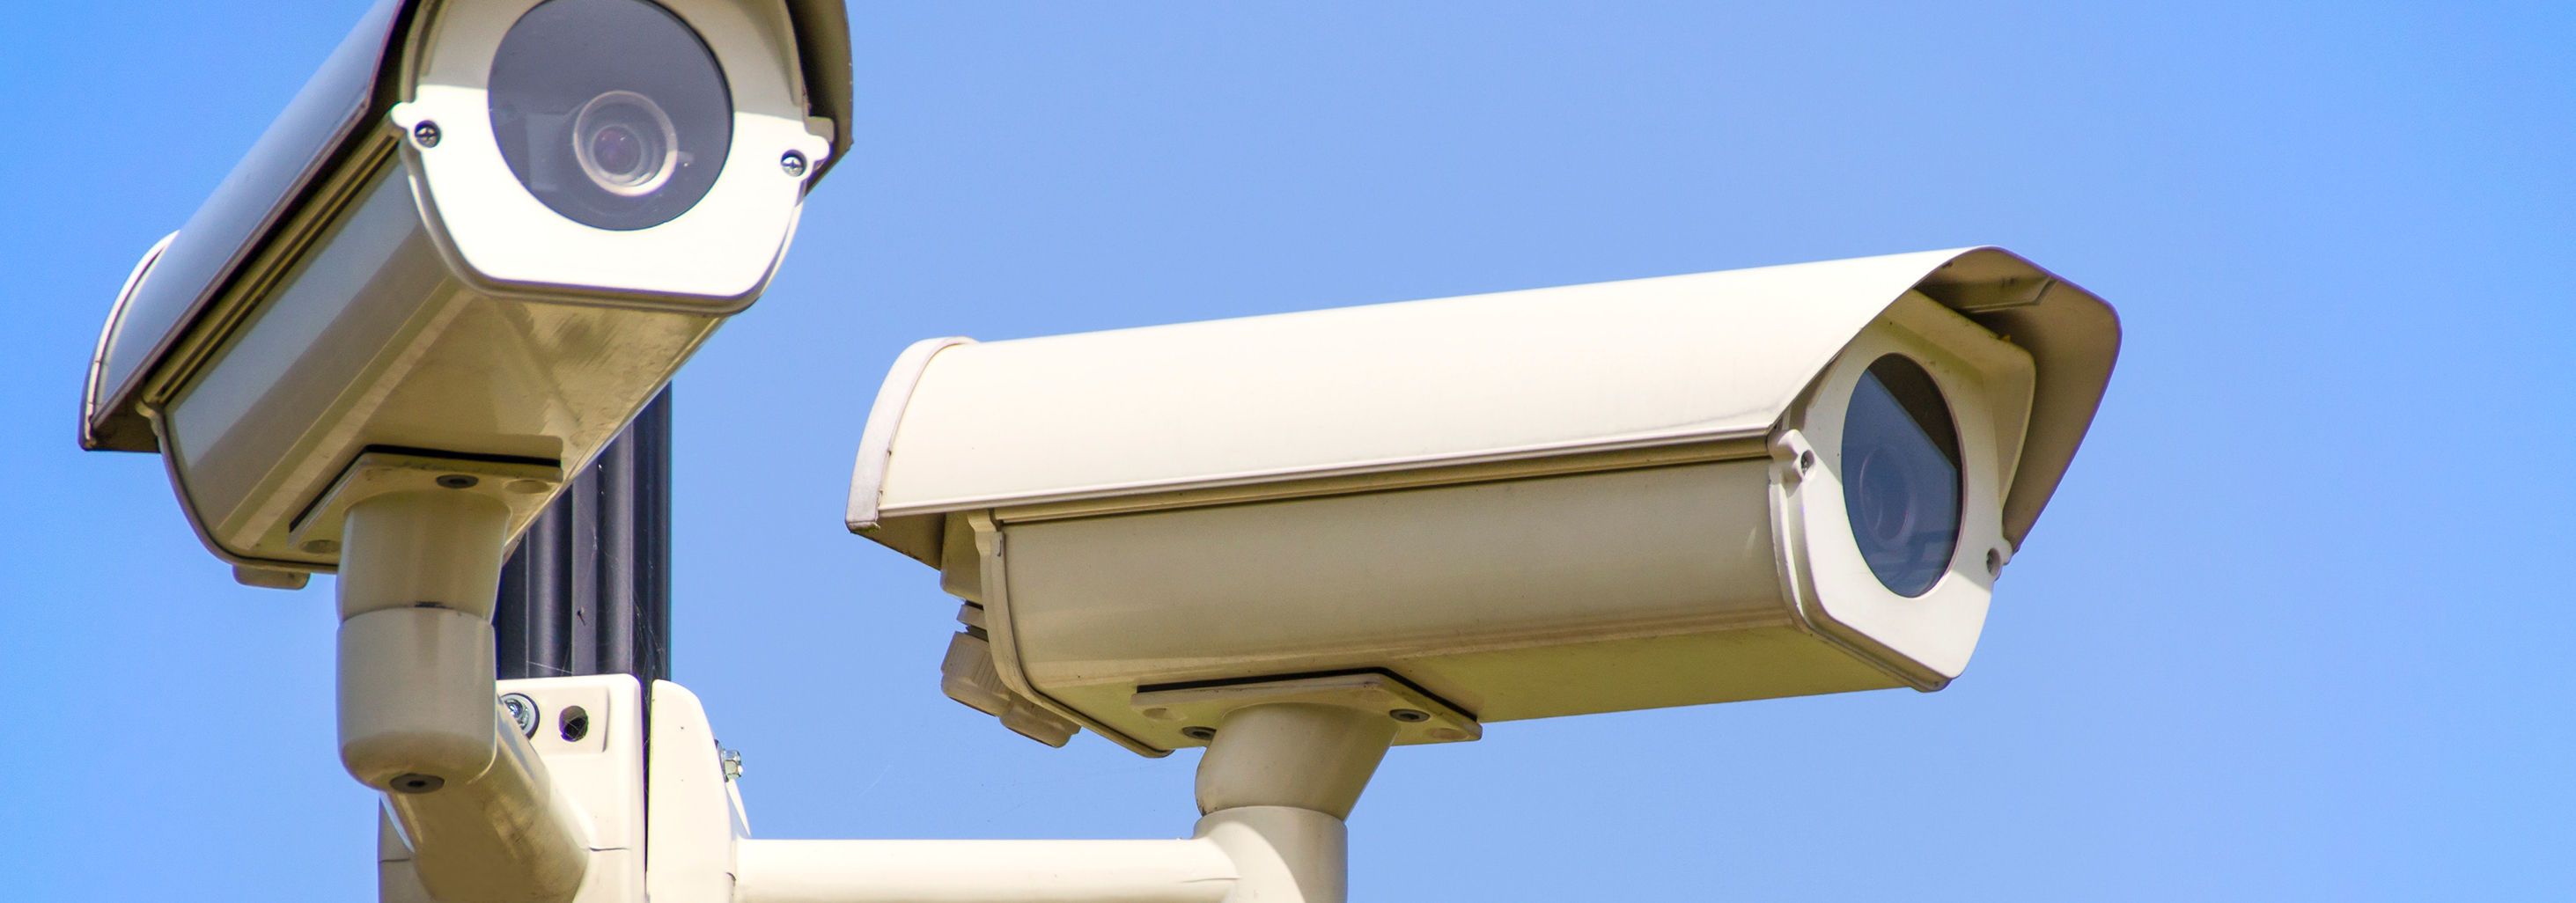 Working as a CCTV Operator (Public Space Surveillance)